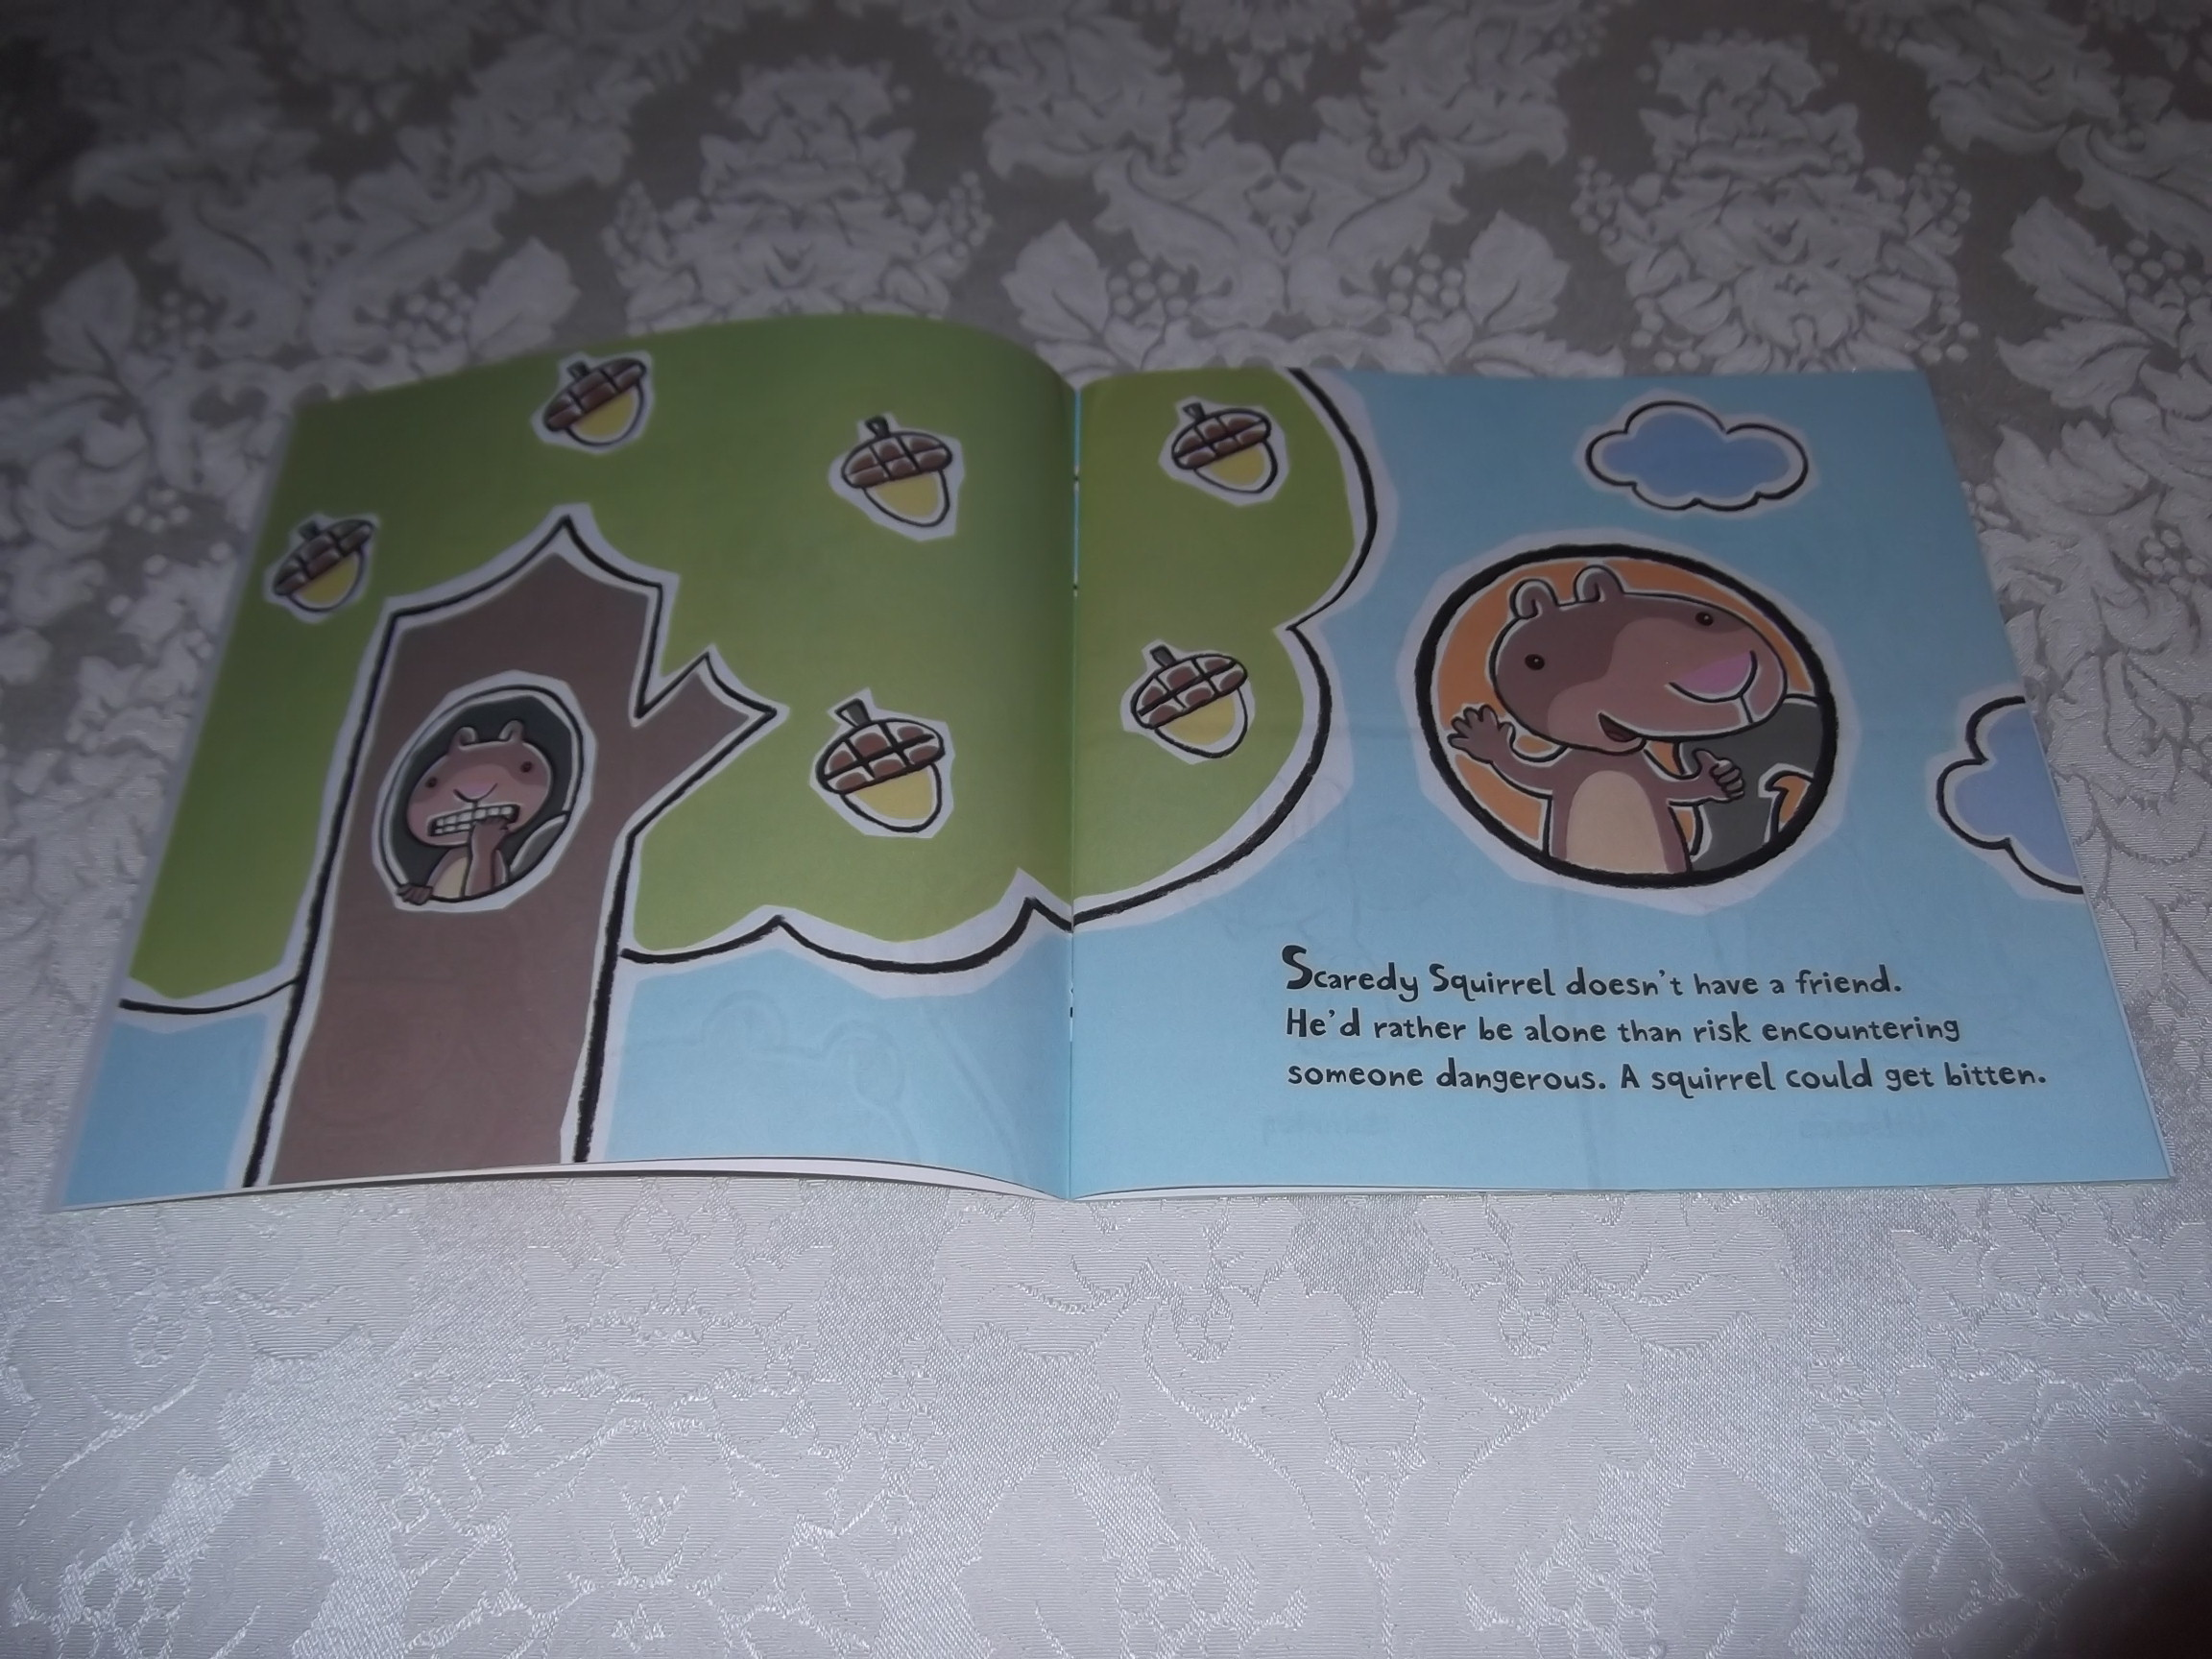 Scaredy Squirrel Makes a Friend by Mélanie Watt 2007, Hardcover Children's Book